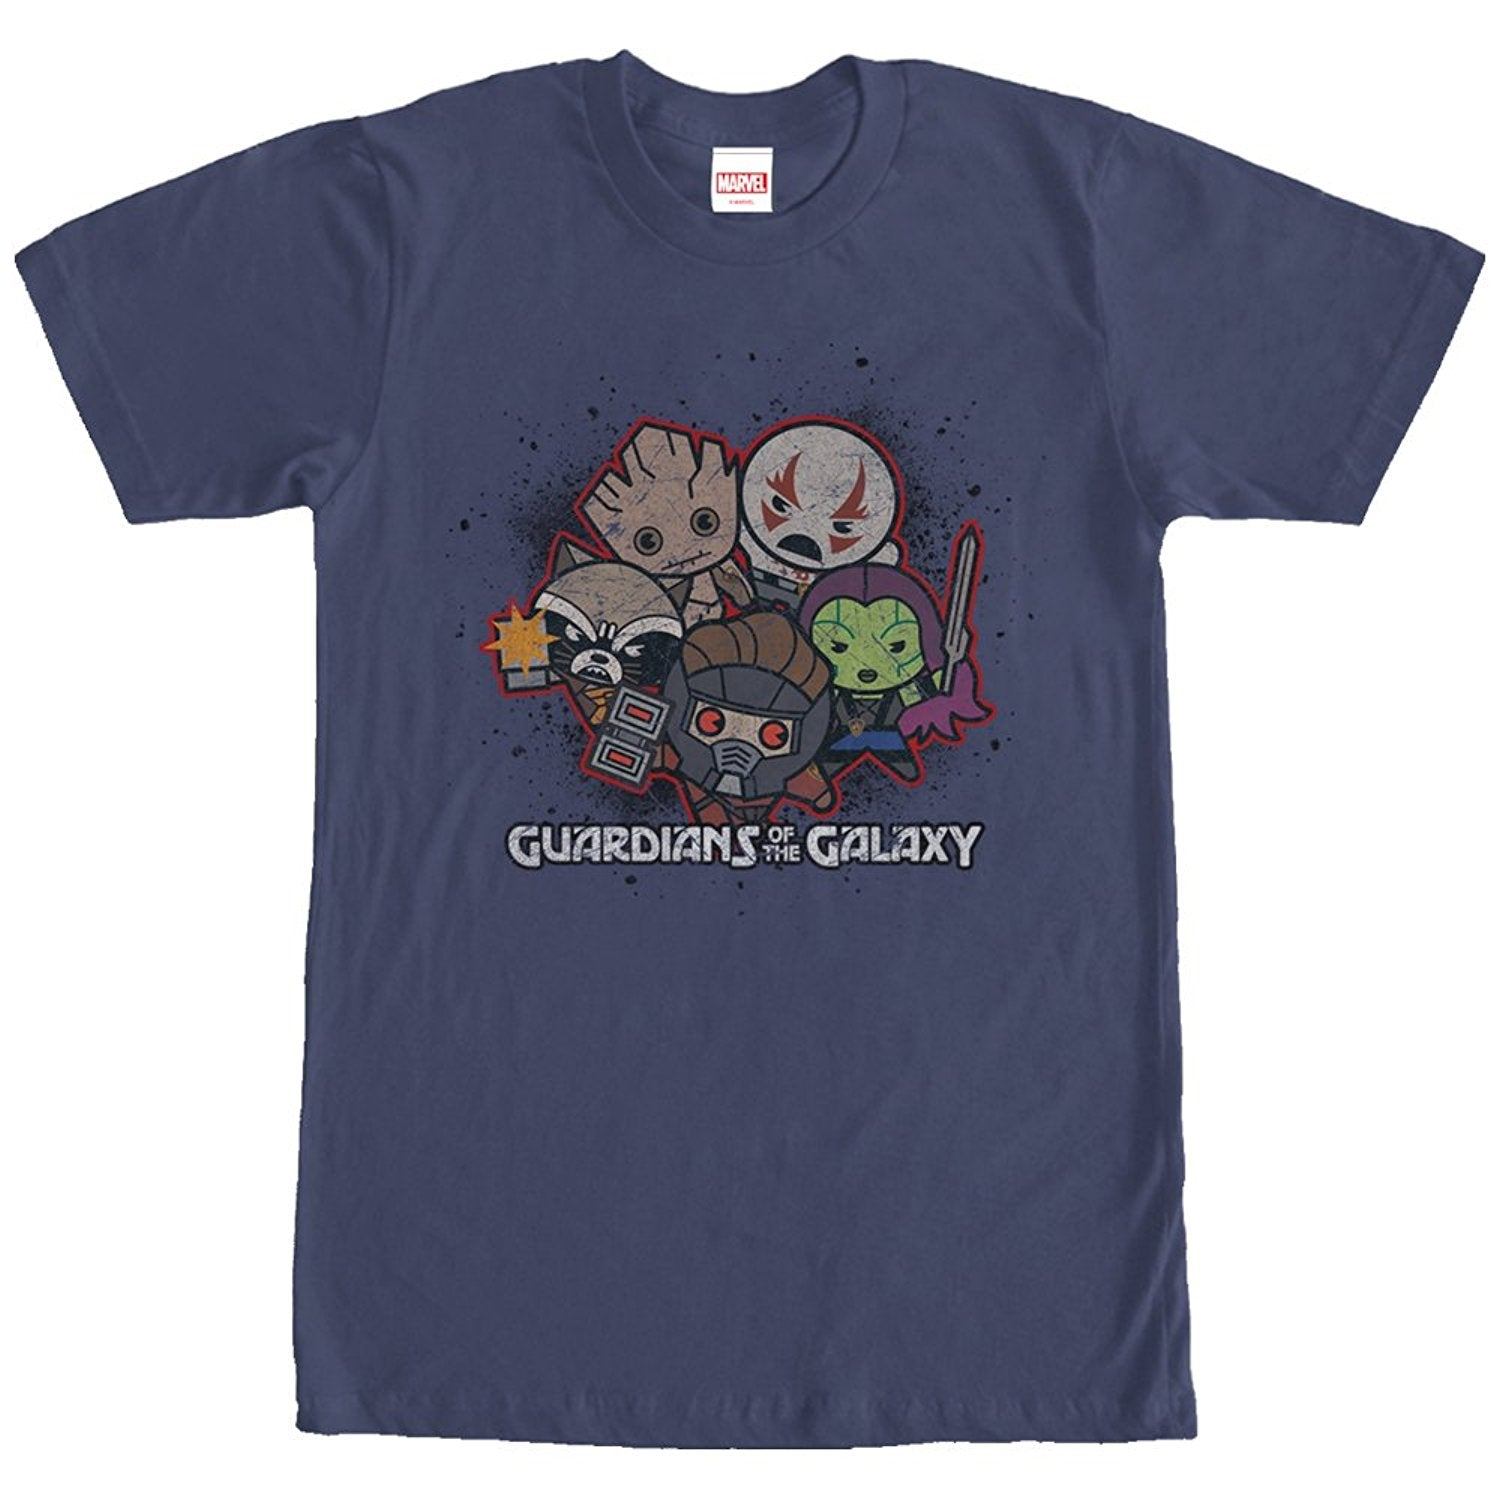 Marvel Guardians of the Galaxy Kawaii Mens Graphic T Shirt